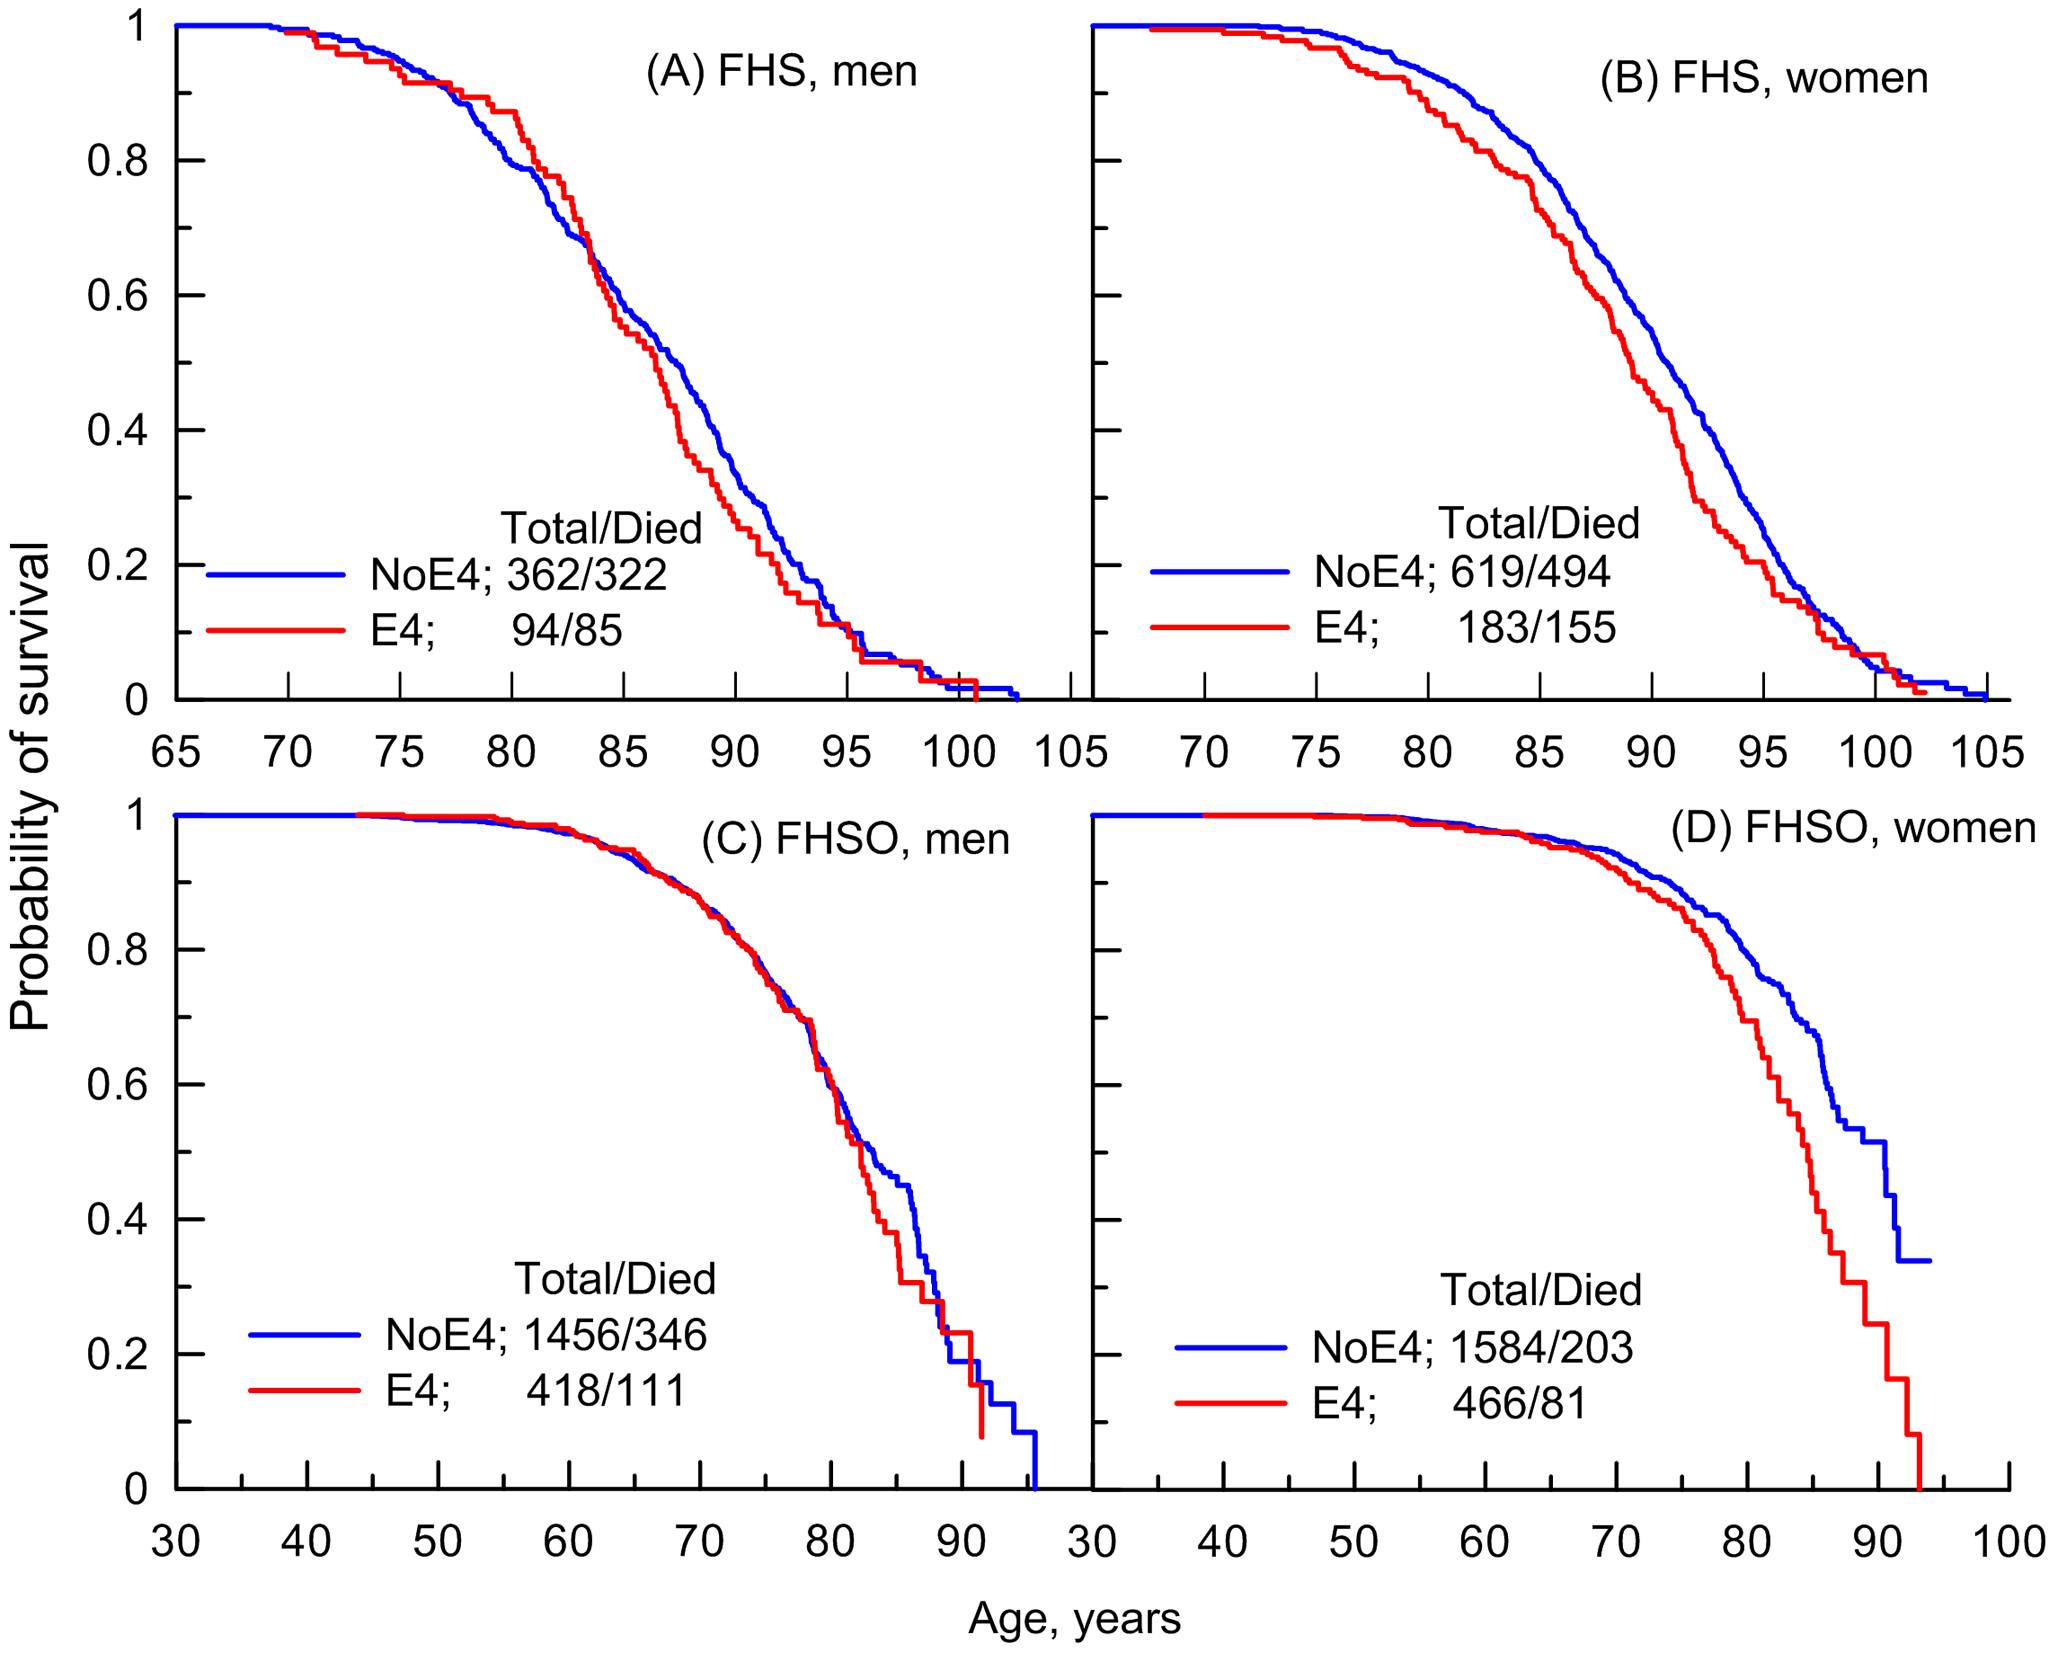 Empirical age patterns of survival of the ApoE4 carriers and non-carriers in the FHS.